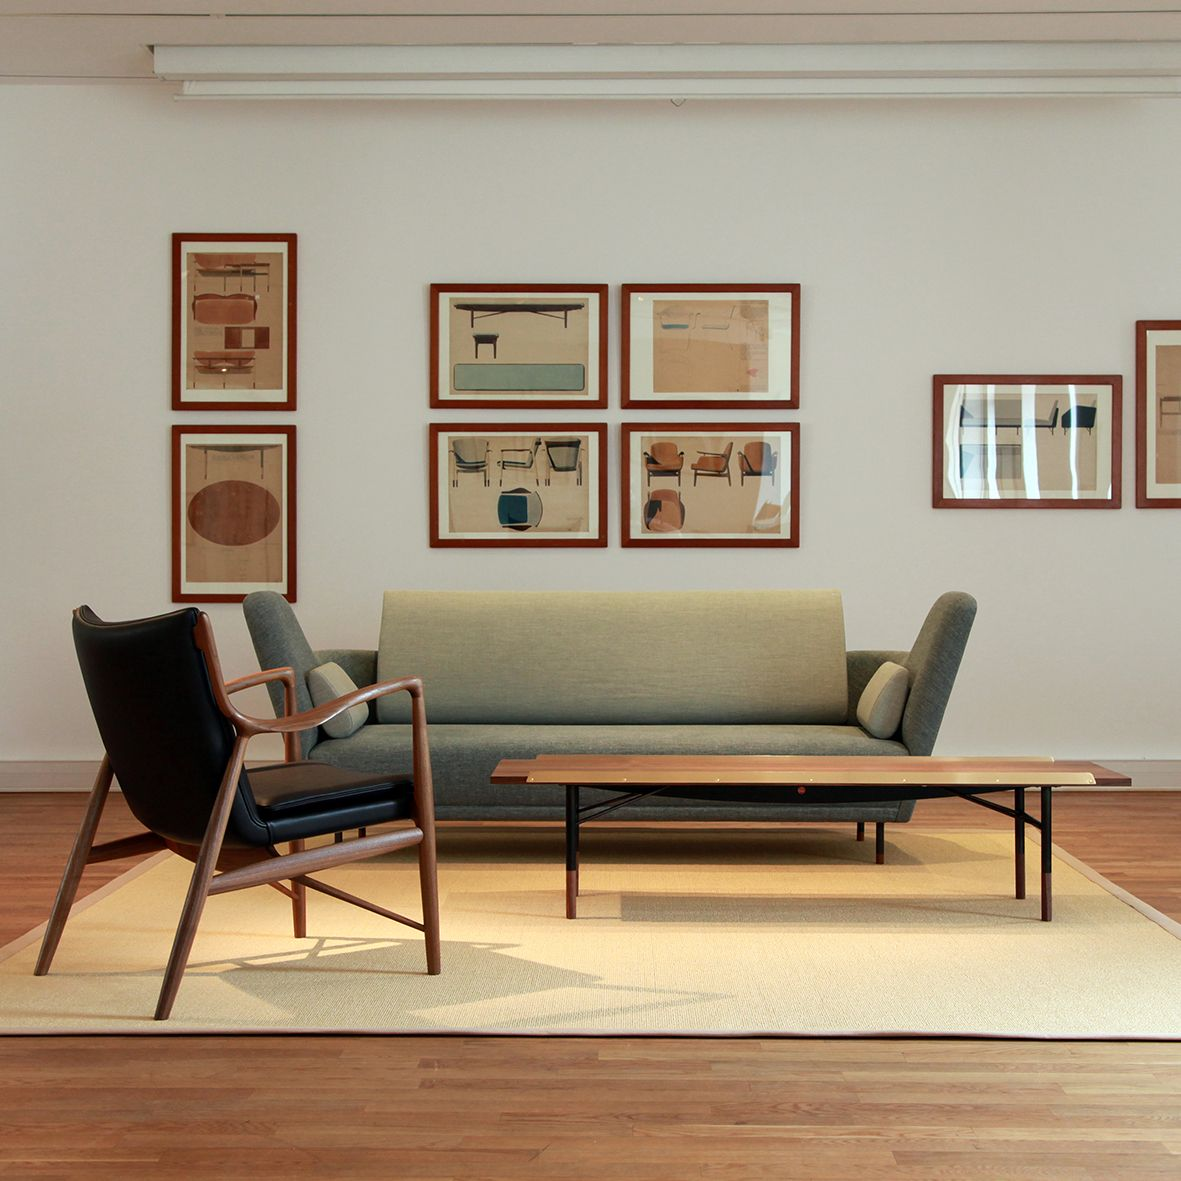 57 Sofa Images | House Of Finn Juhl